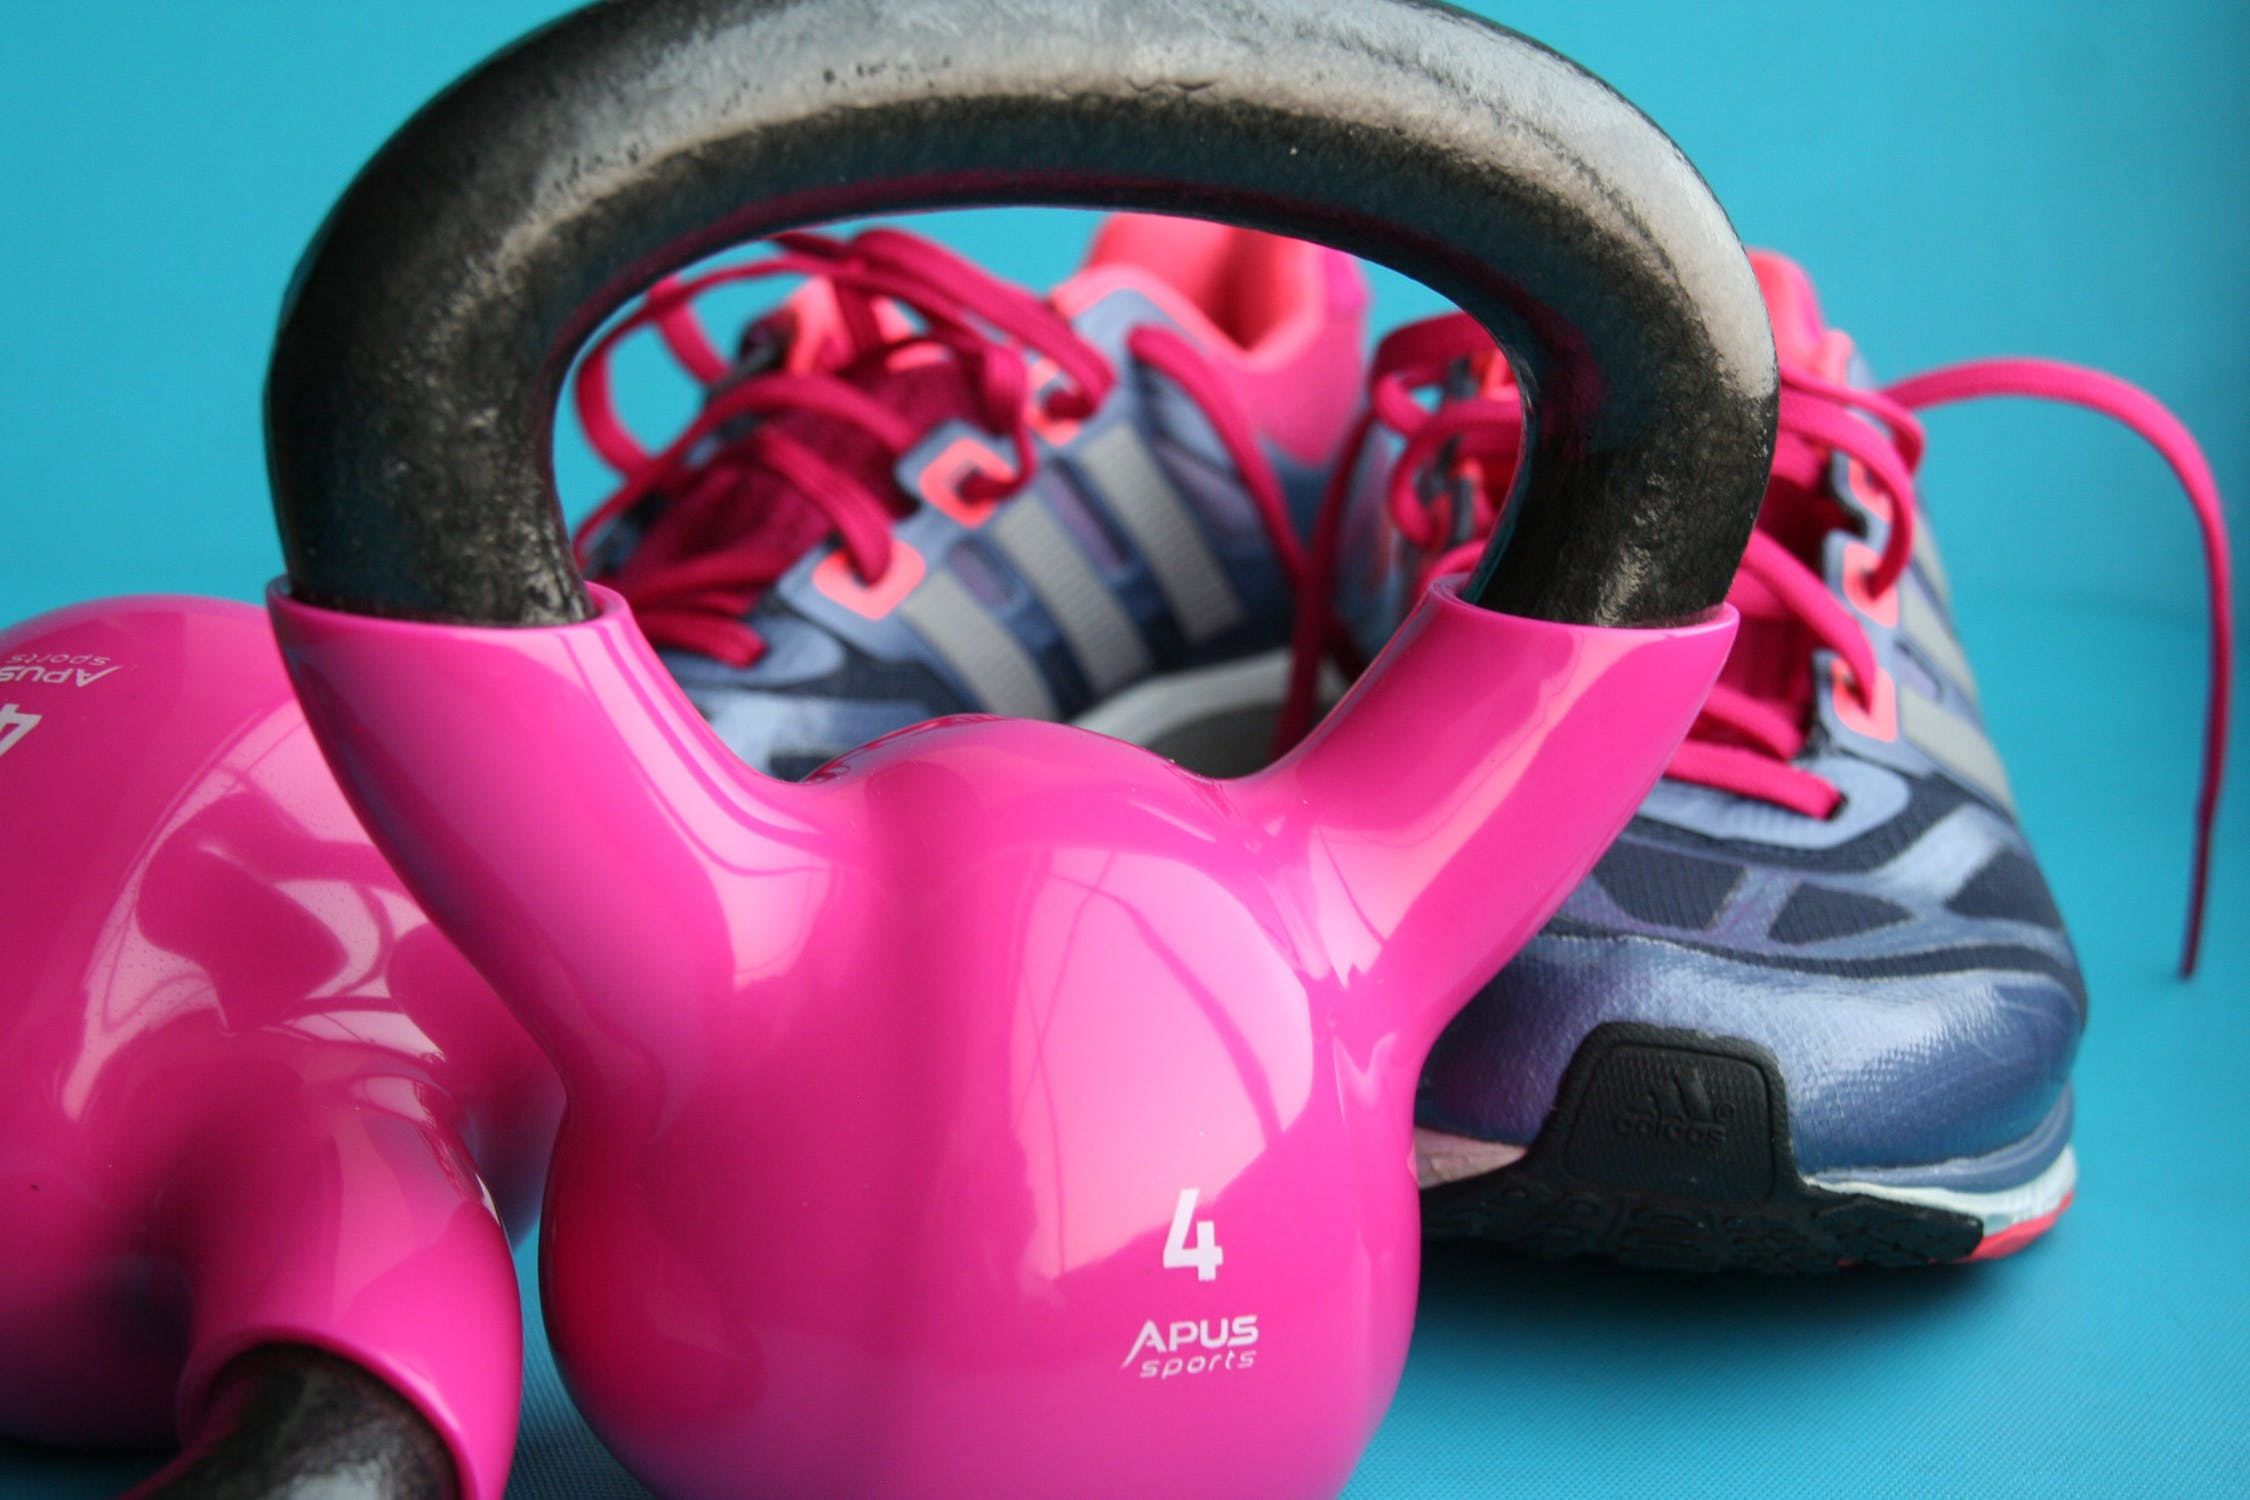 Weight equipment and shoes